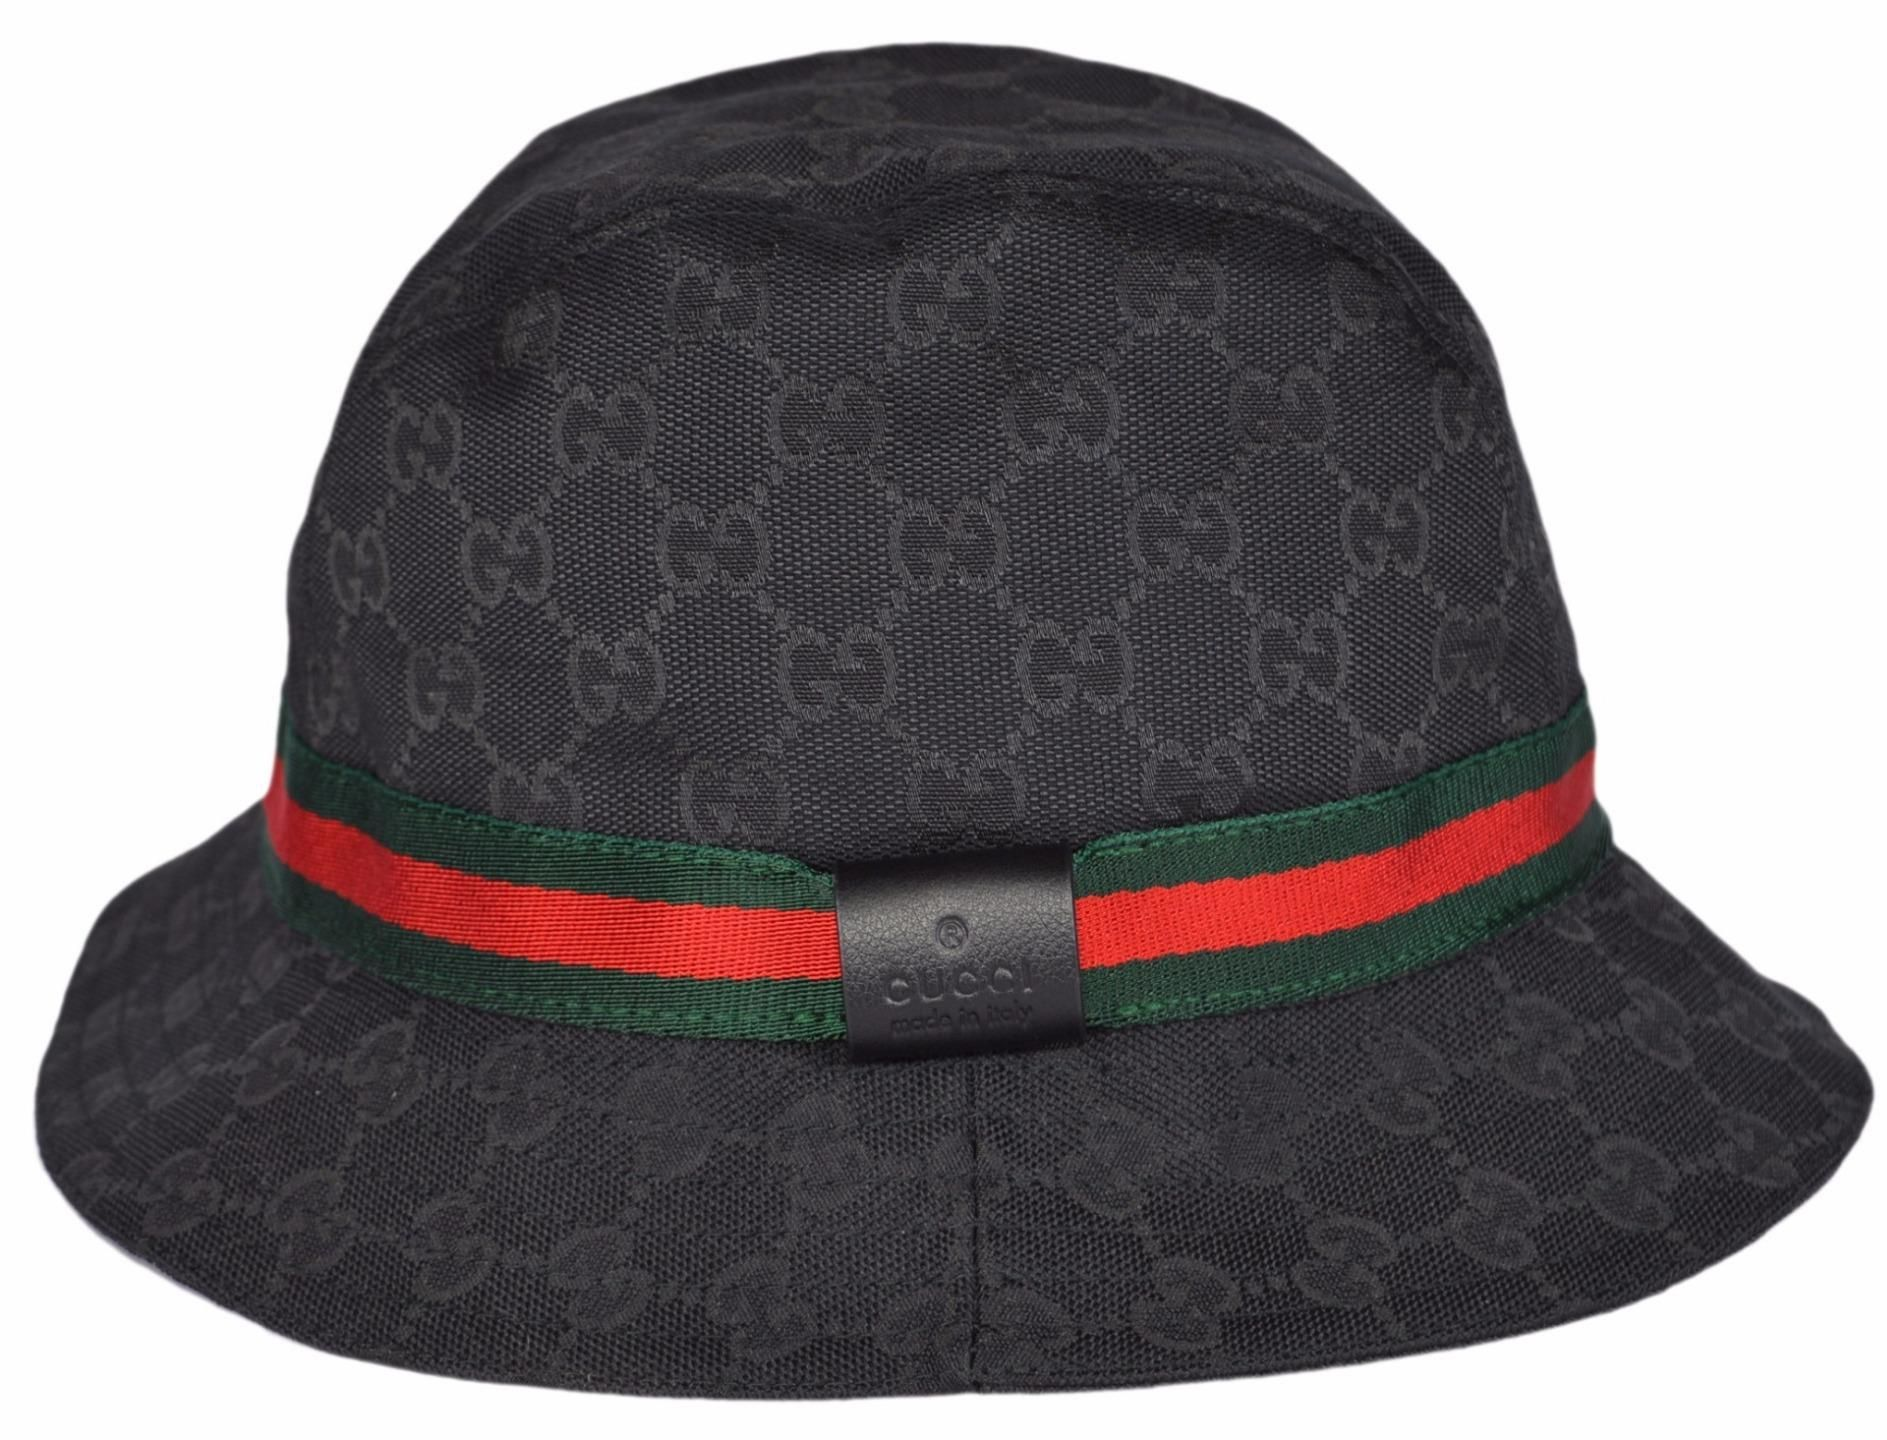 09d0dfe9cac5aa NEW GUCCI 200036 GG Guccissima Black Web Stripe Fedora Bucket Hat S 57.  Free shipping